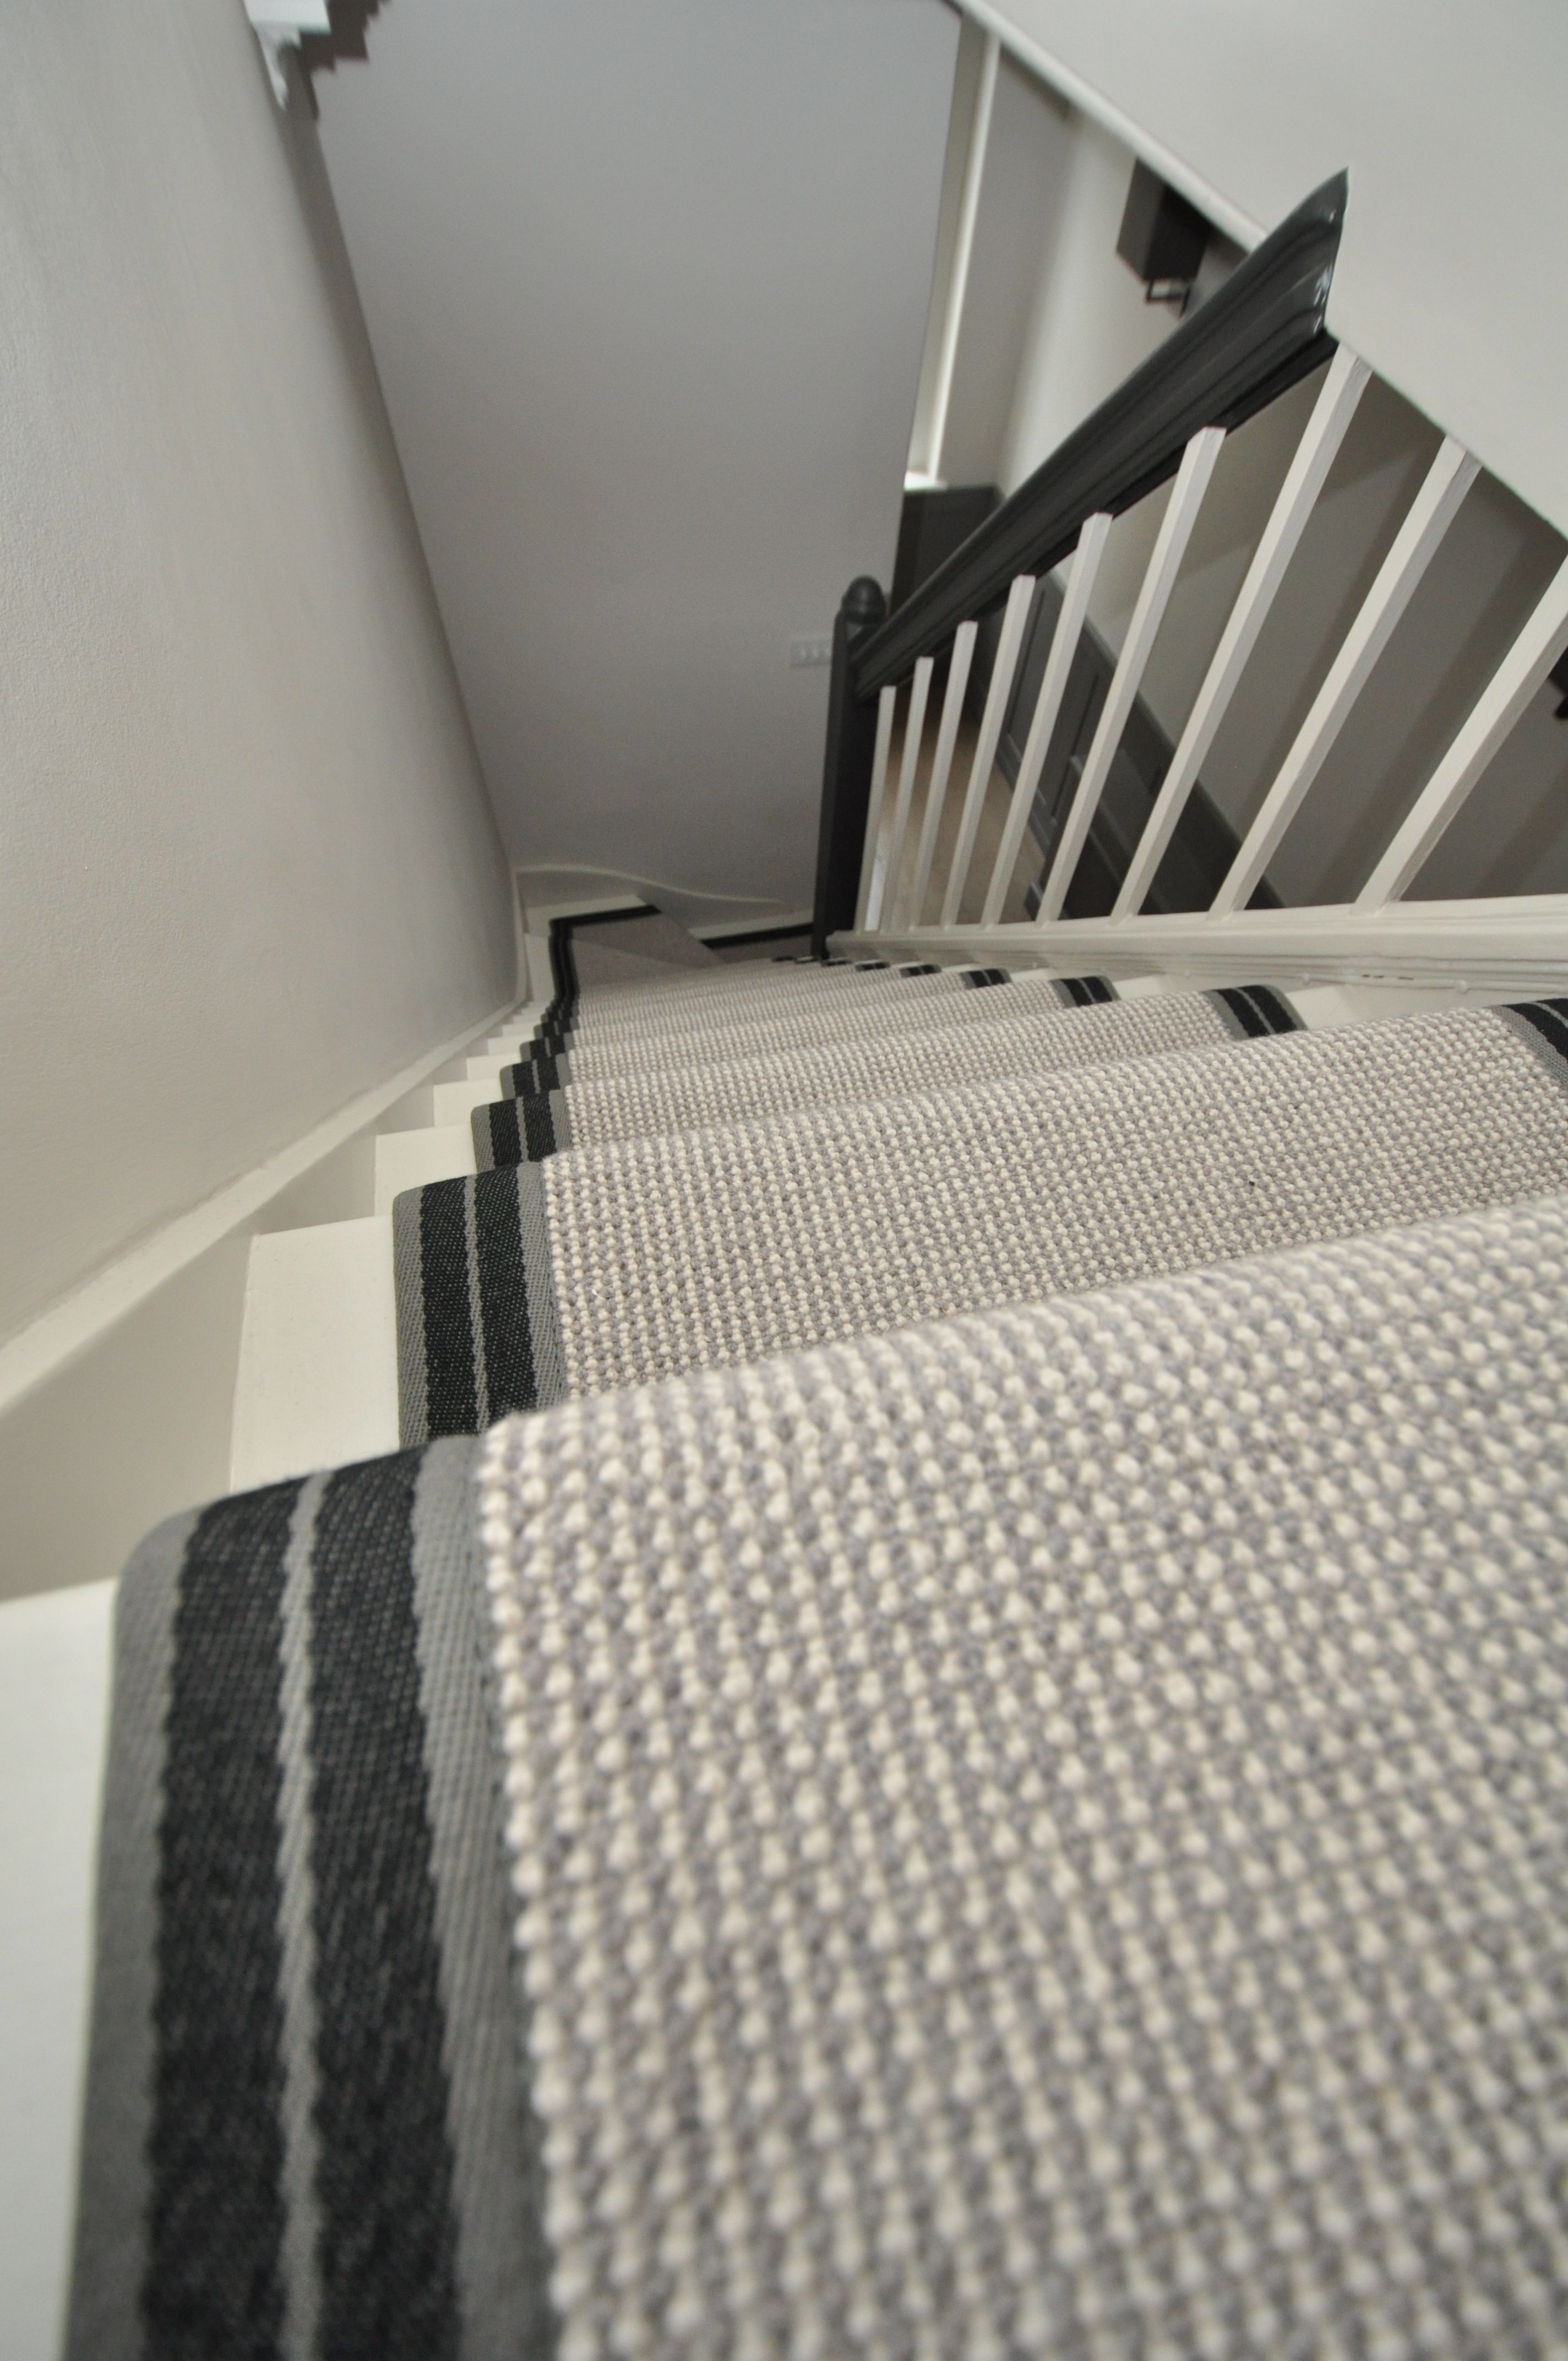 4 059 Wool Stair Runners Bowloom Wool Carpet Fitted Stair Runners With Stripe P Colour 2 Binding Tape Wool Stair Runner Stair Runner Wool Carpet